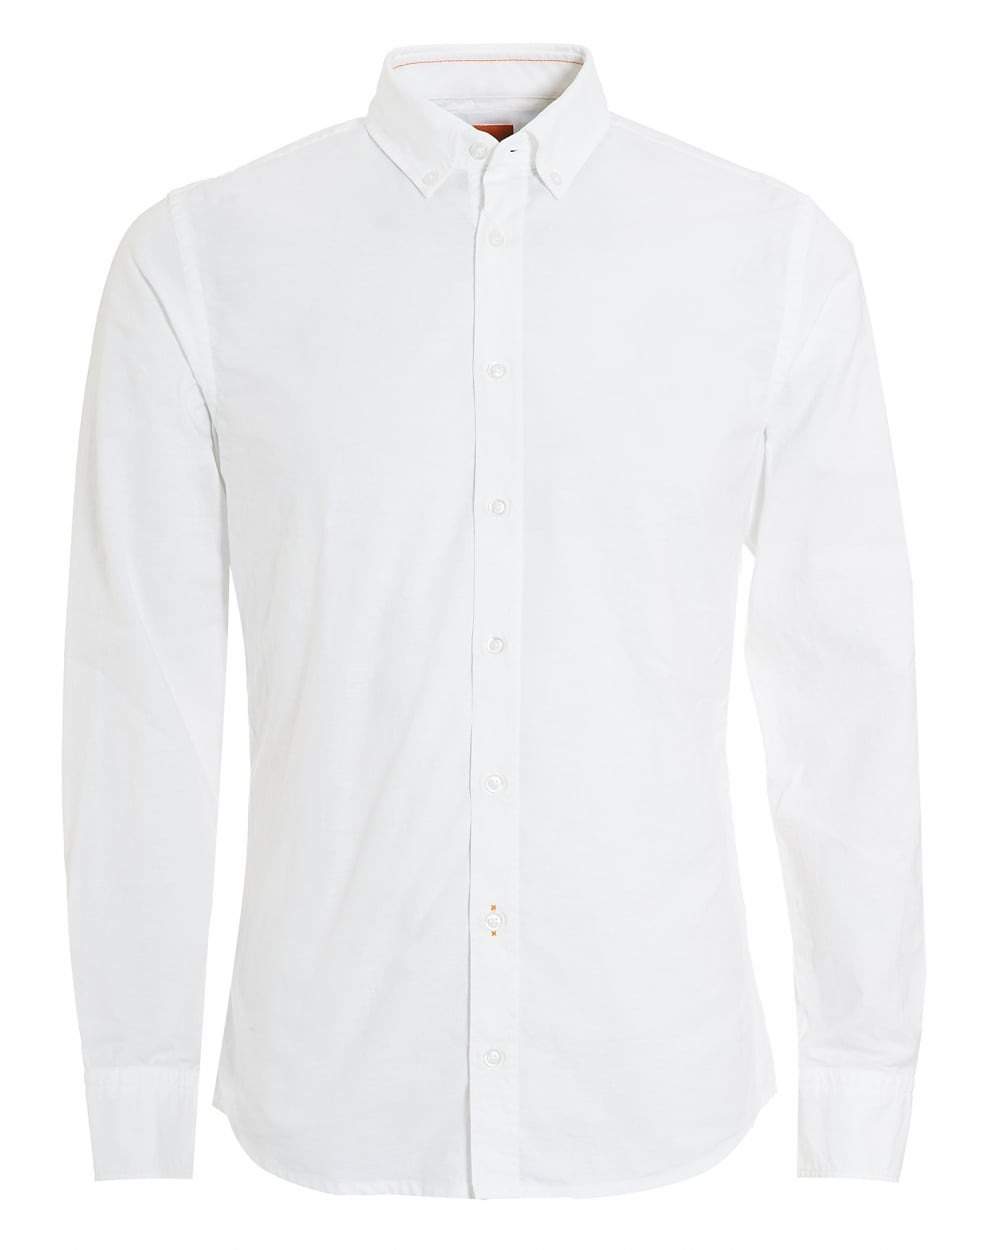 Hugo boss orange mens epreppy slim fit white oxford shirt for Mens white oxford button down shirt